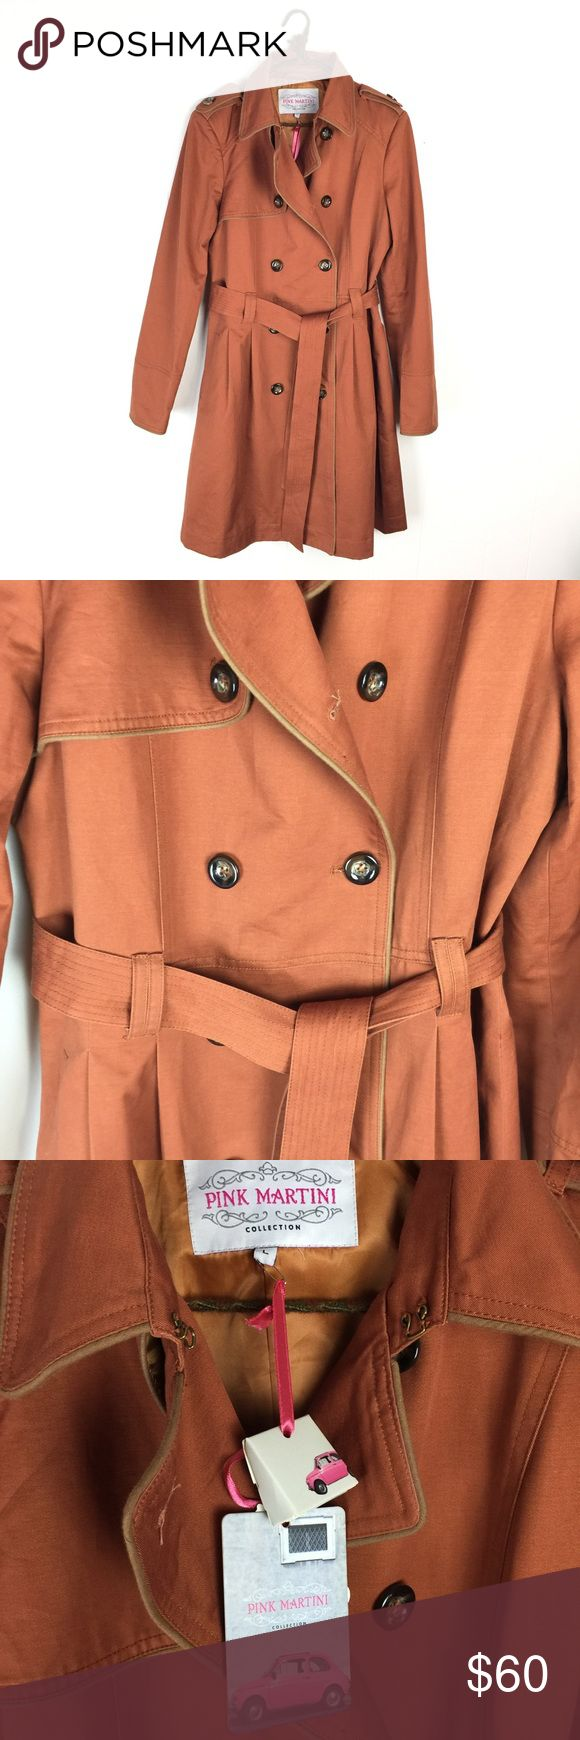 """Modcloth Pink Martini Retro Rust Trench Coat / L New with tags. Pink Martini Modcloth trench coat in rust orange/brown. Button front, tie waist. Cotton shell. Size large. Apx: 39"""" long. 21"""" underarm to underarm. Modcloth Jackets & Coats Trench Coats"""